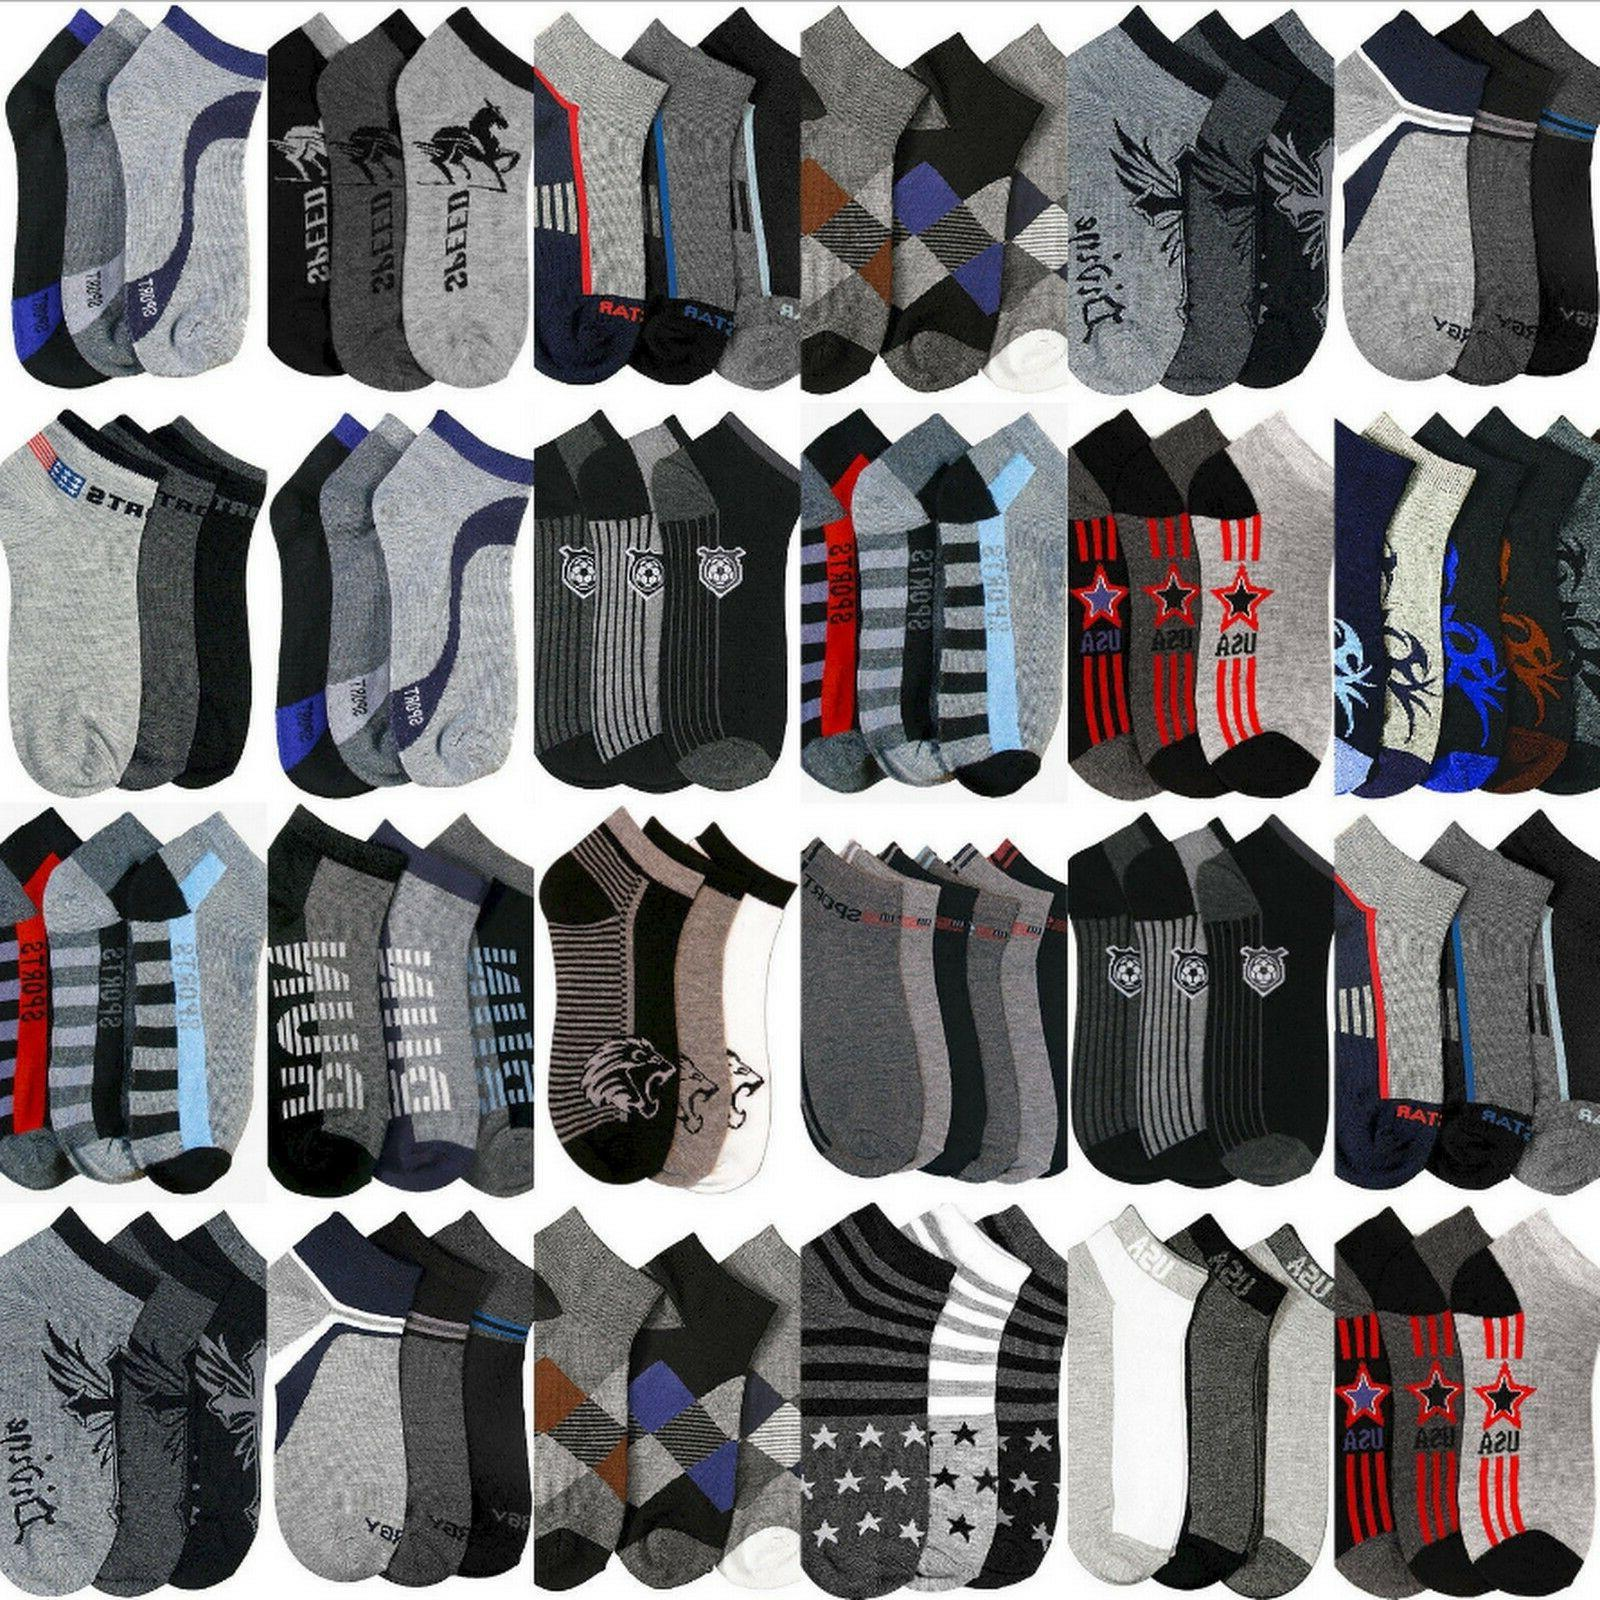 Mens Boys Ankle Socks Size 9-11 Bulk Wholesale Lot Stretchy